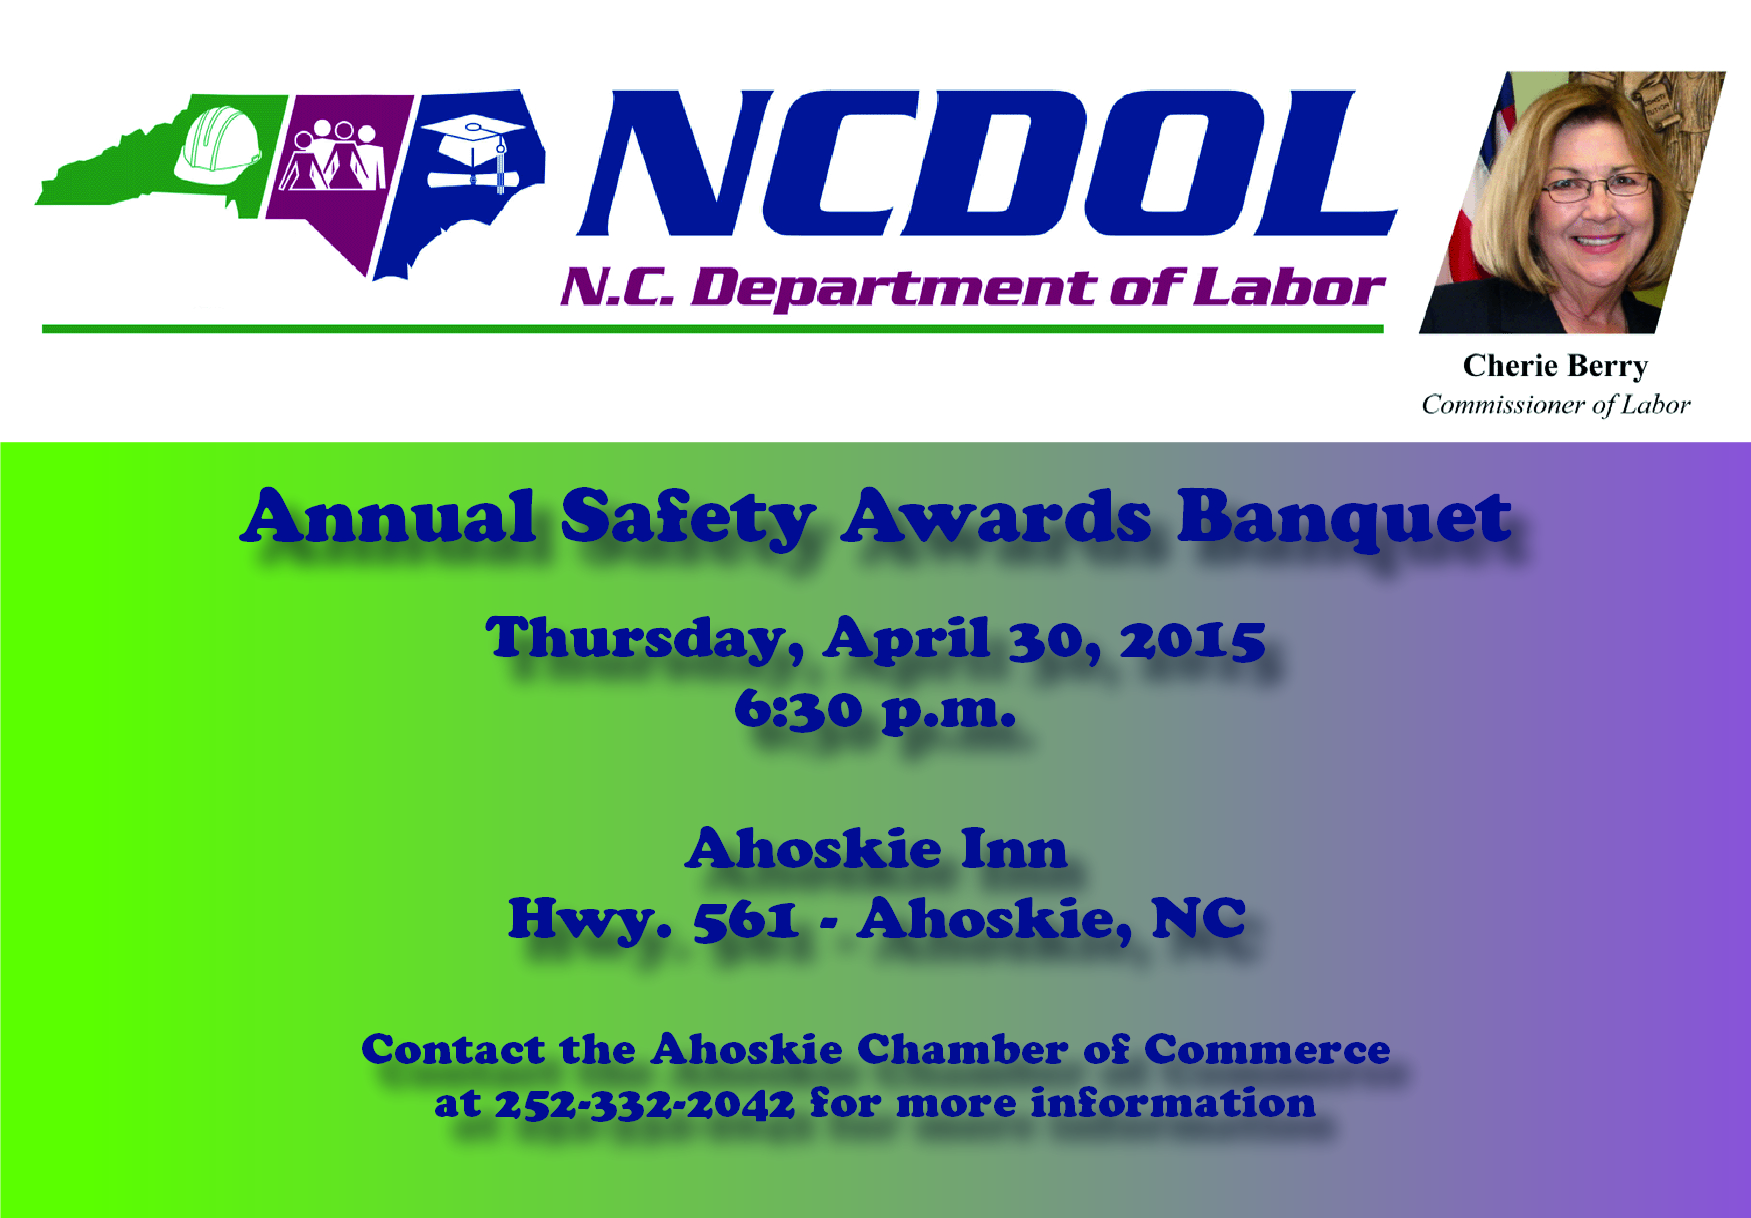 Annual Safety Awards - April 30th!